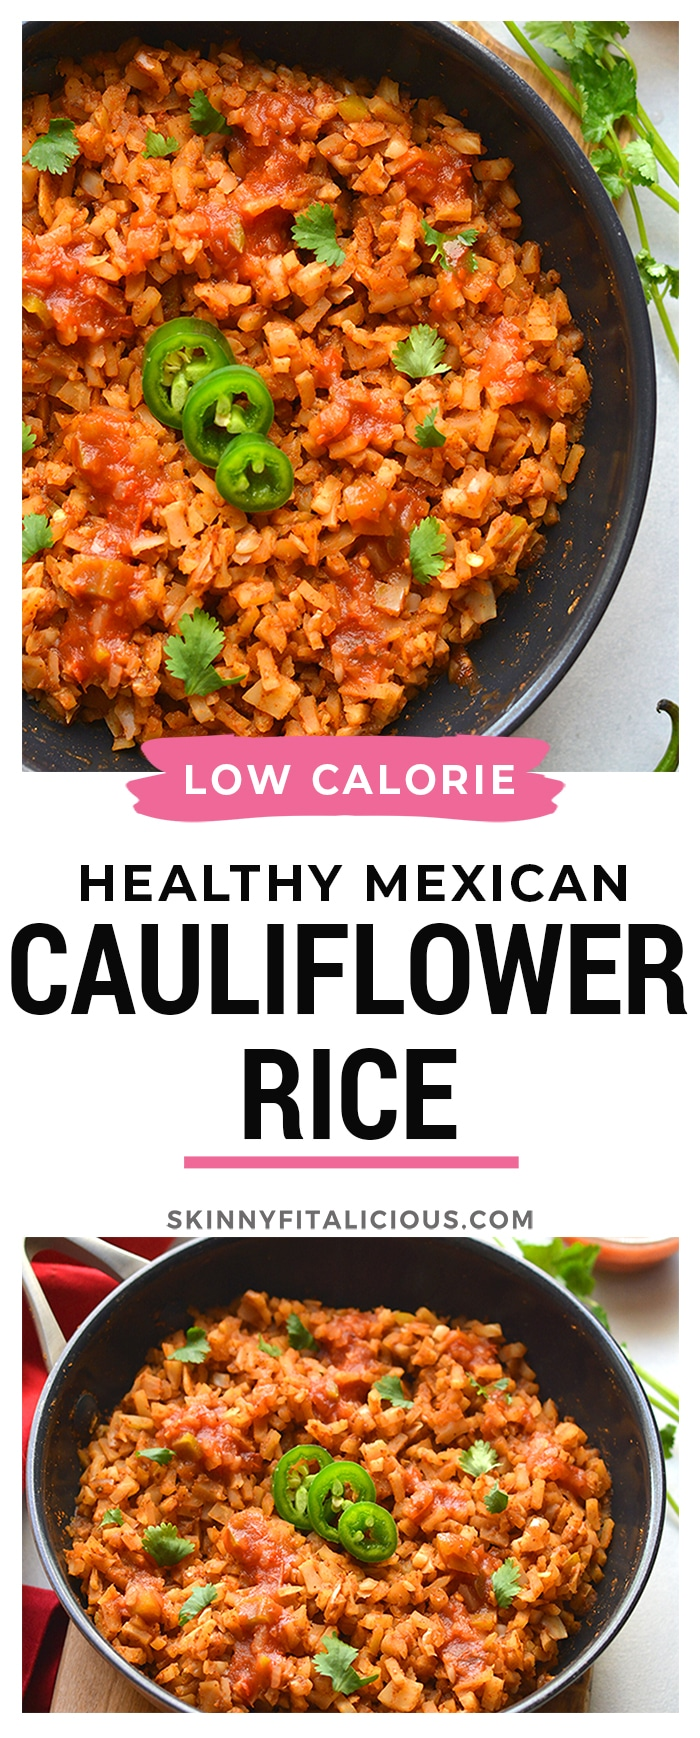 Healthy Mexican Cauliflower Rice is a low calorie, low carb dish made in one skillet with just a few ingredients. A healthy side dish recipe you can add to a meal, soups, salads and more!